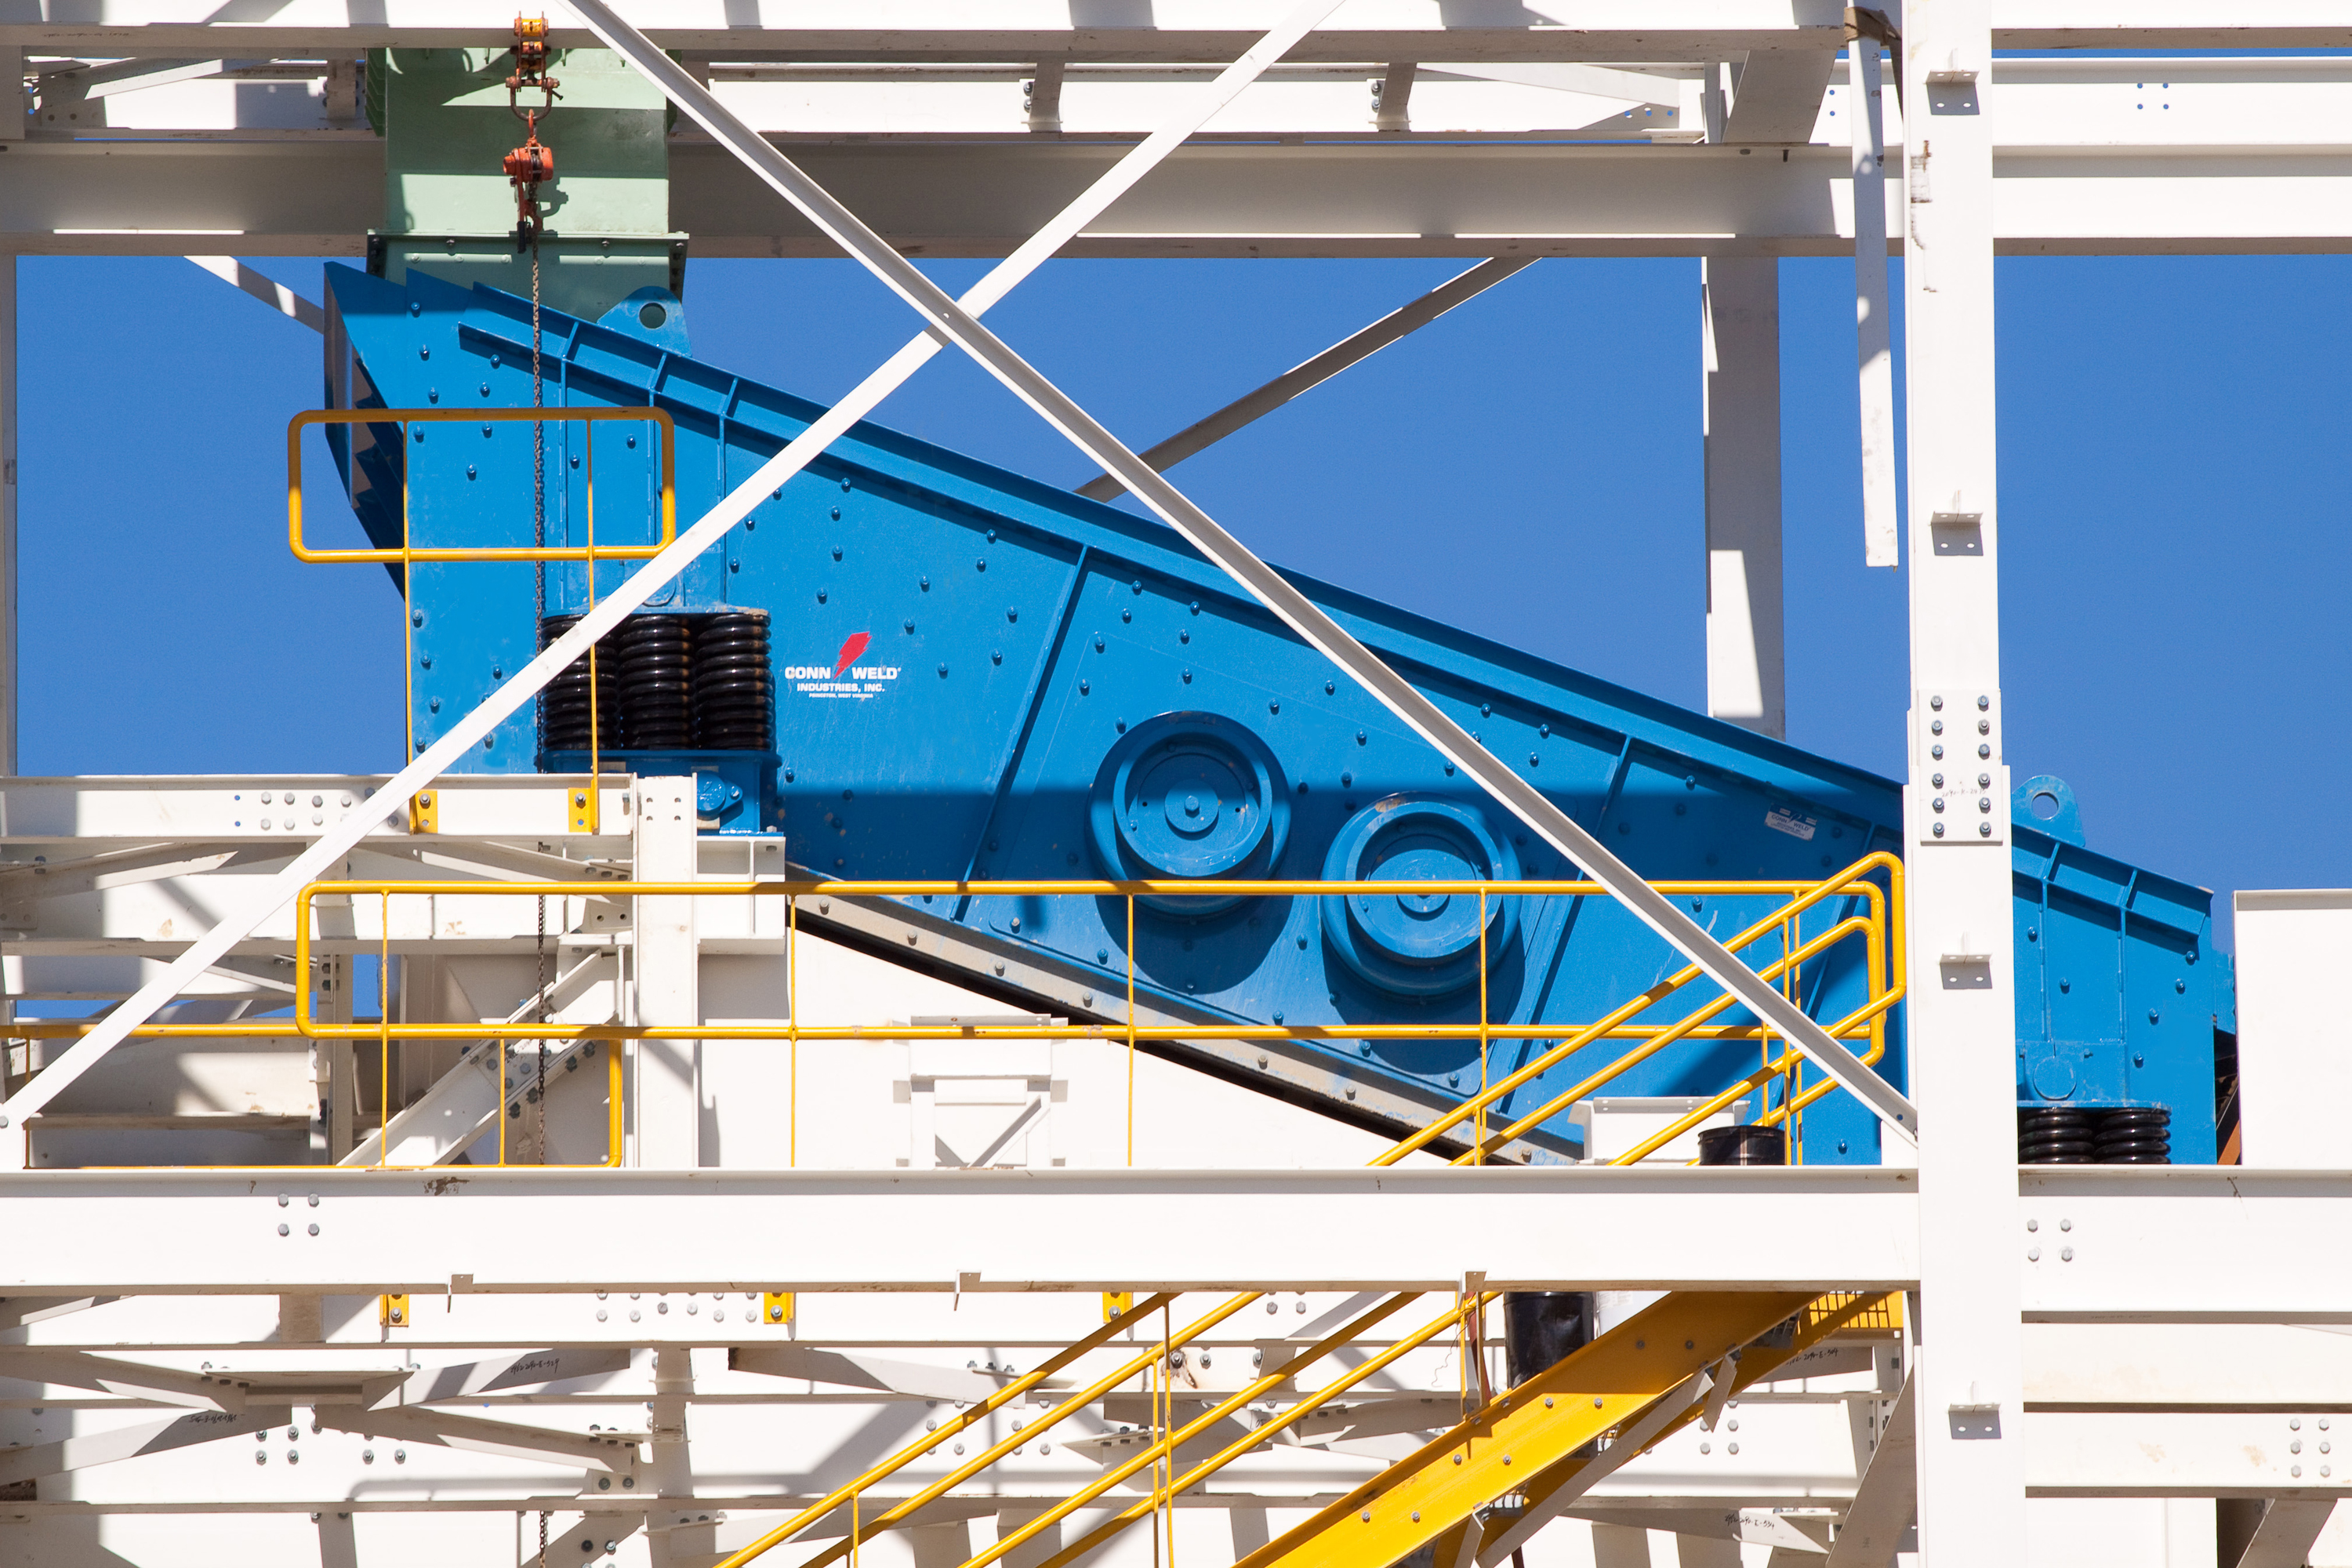 Blue Incline Vibrating Screen Installed in White Structure